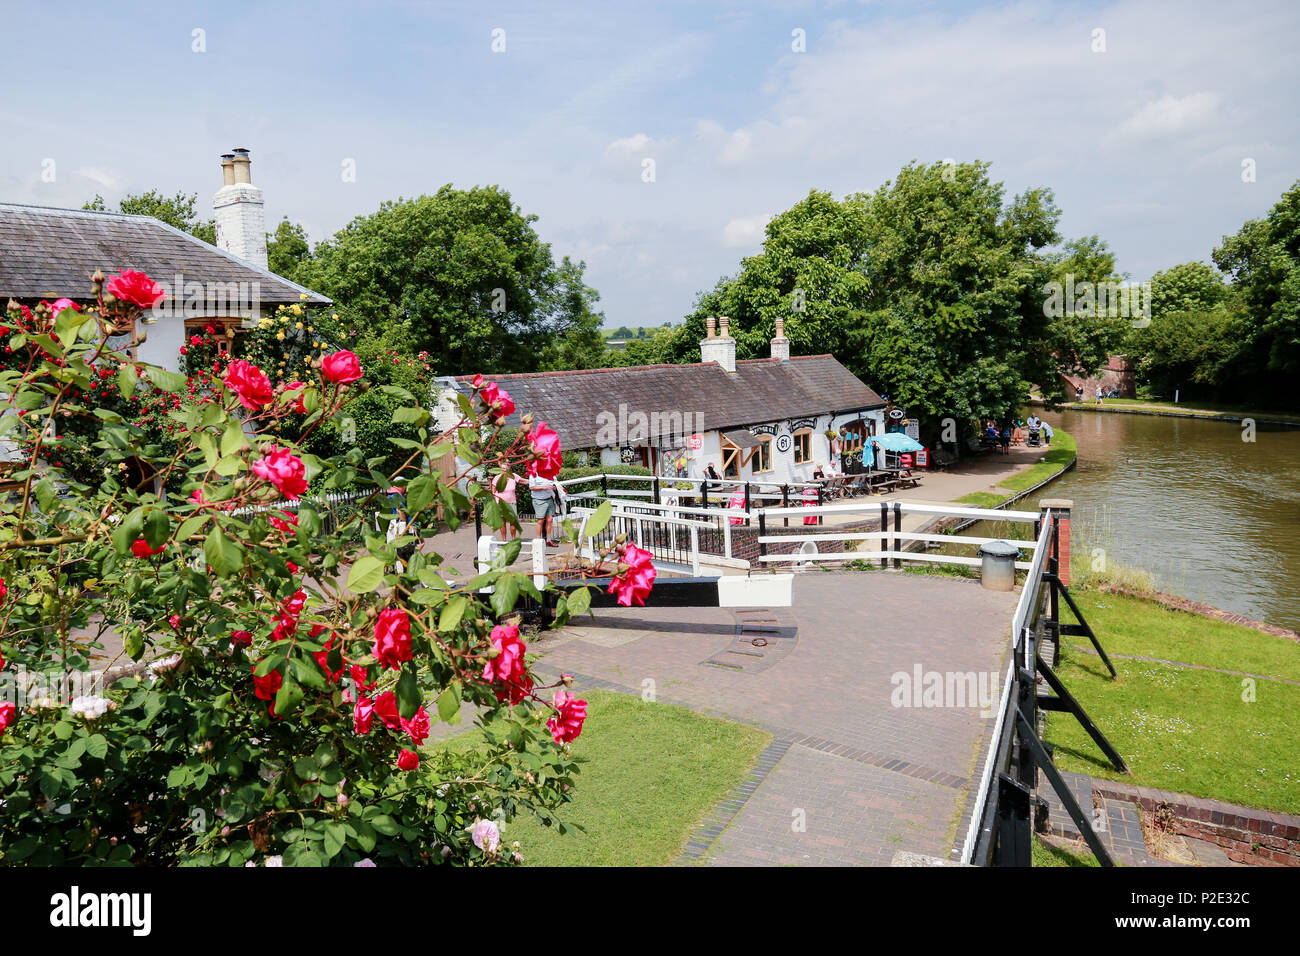 Canalside shops and pubs at Foxton Locks - Stock Image